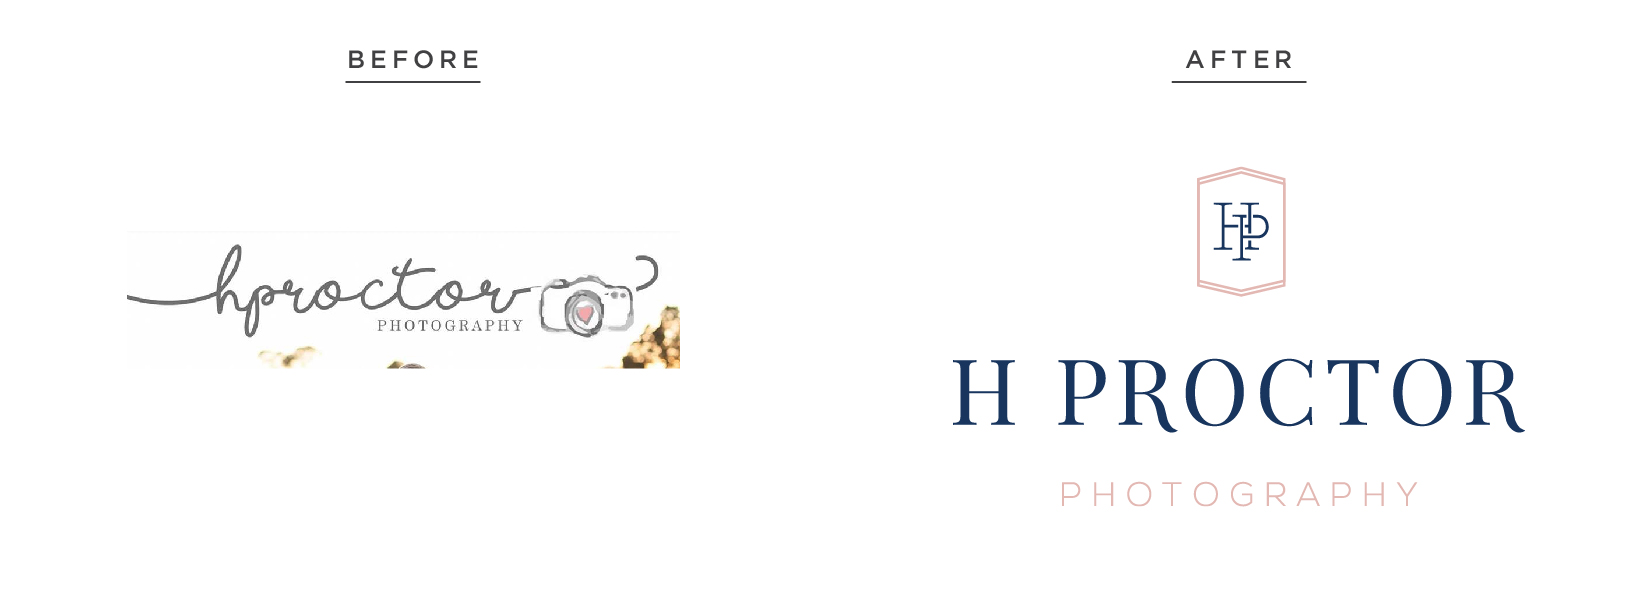 H Proctor Photographer – timeless romantic branding – Hayley Bigham Designs – Tulsa Oklahoma Branding Studio – professional monogram badge - before and after